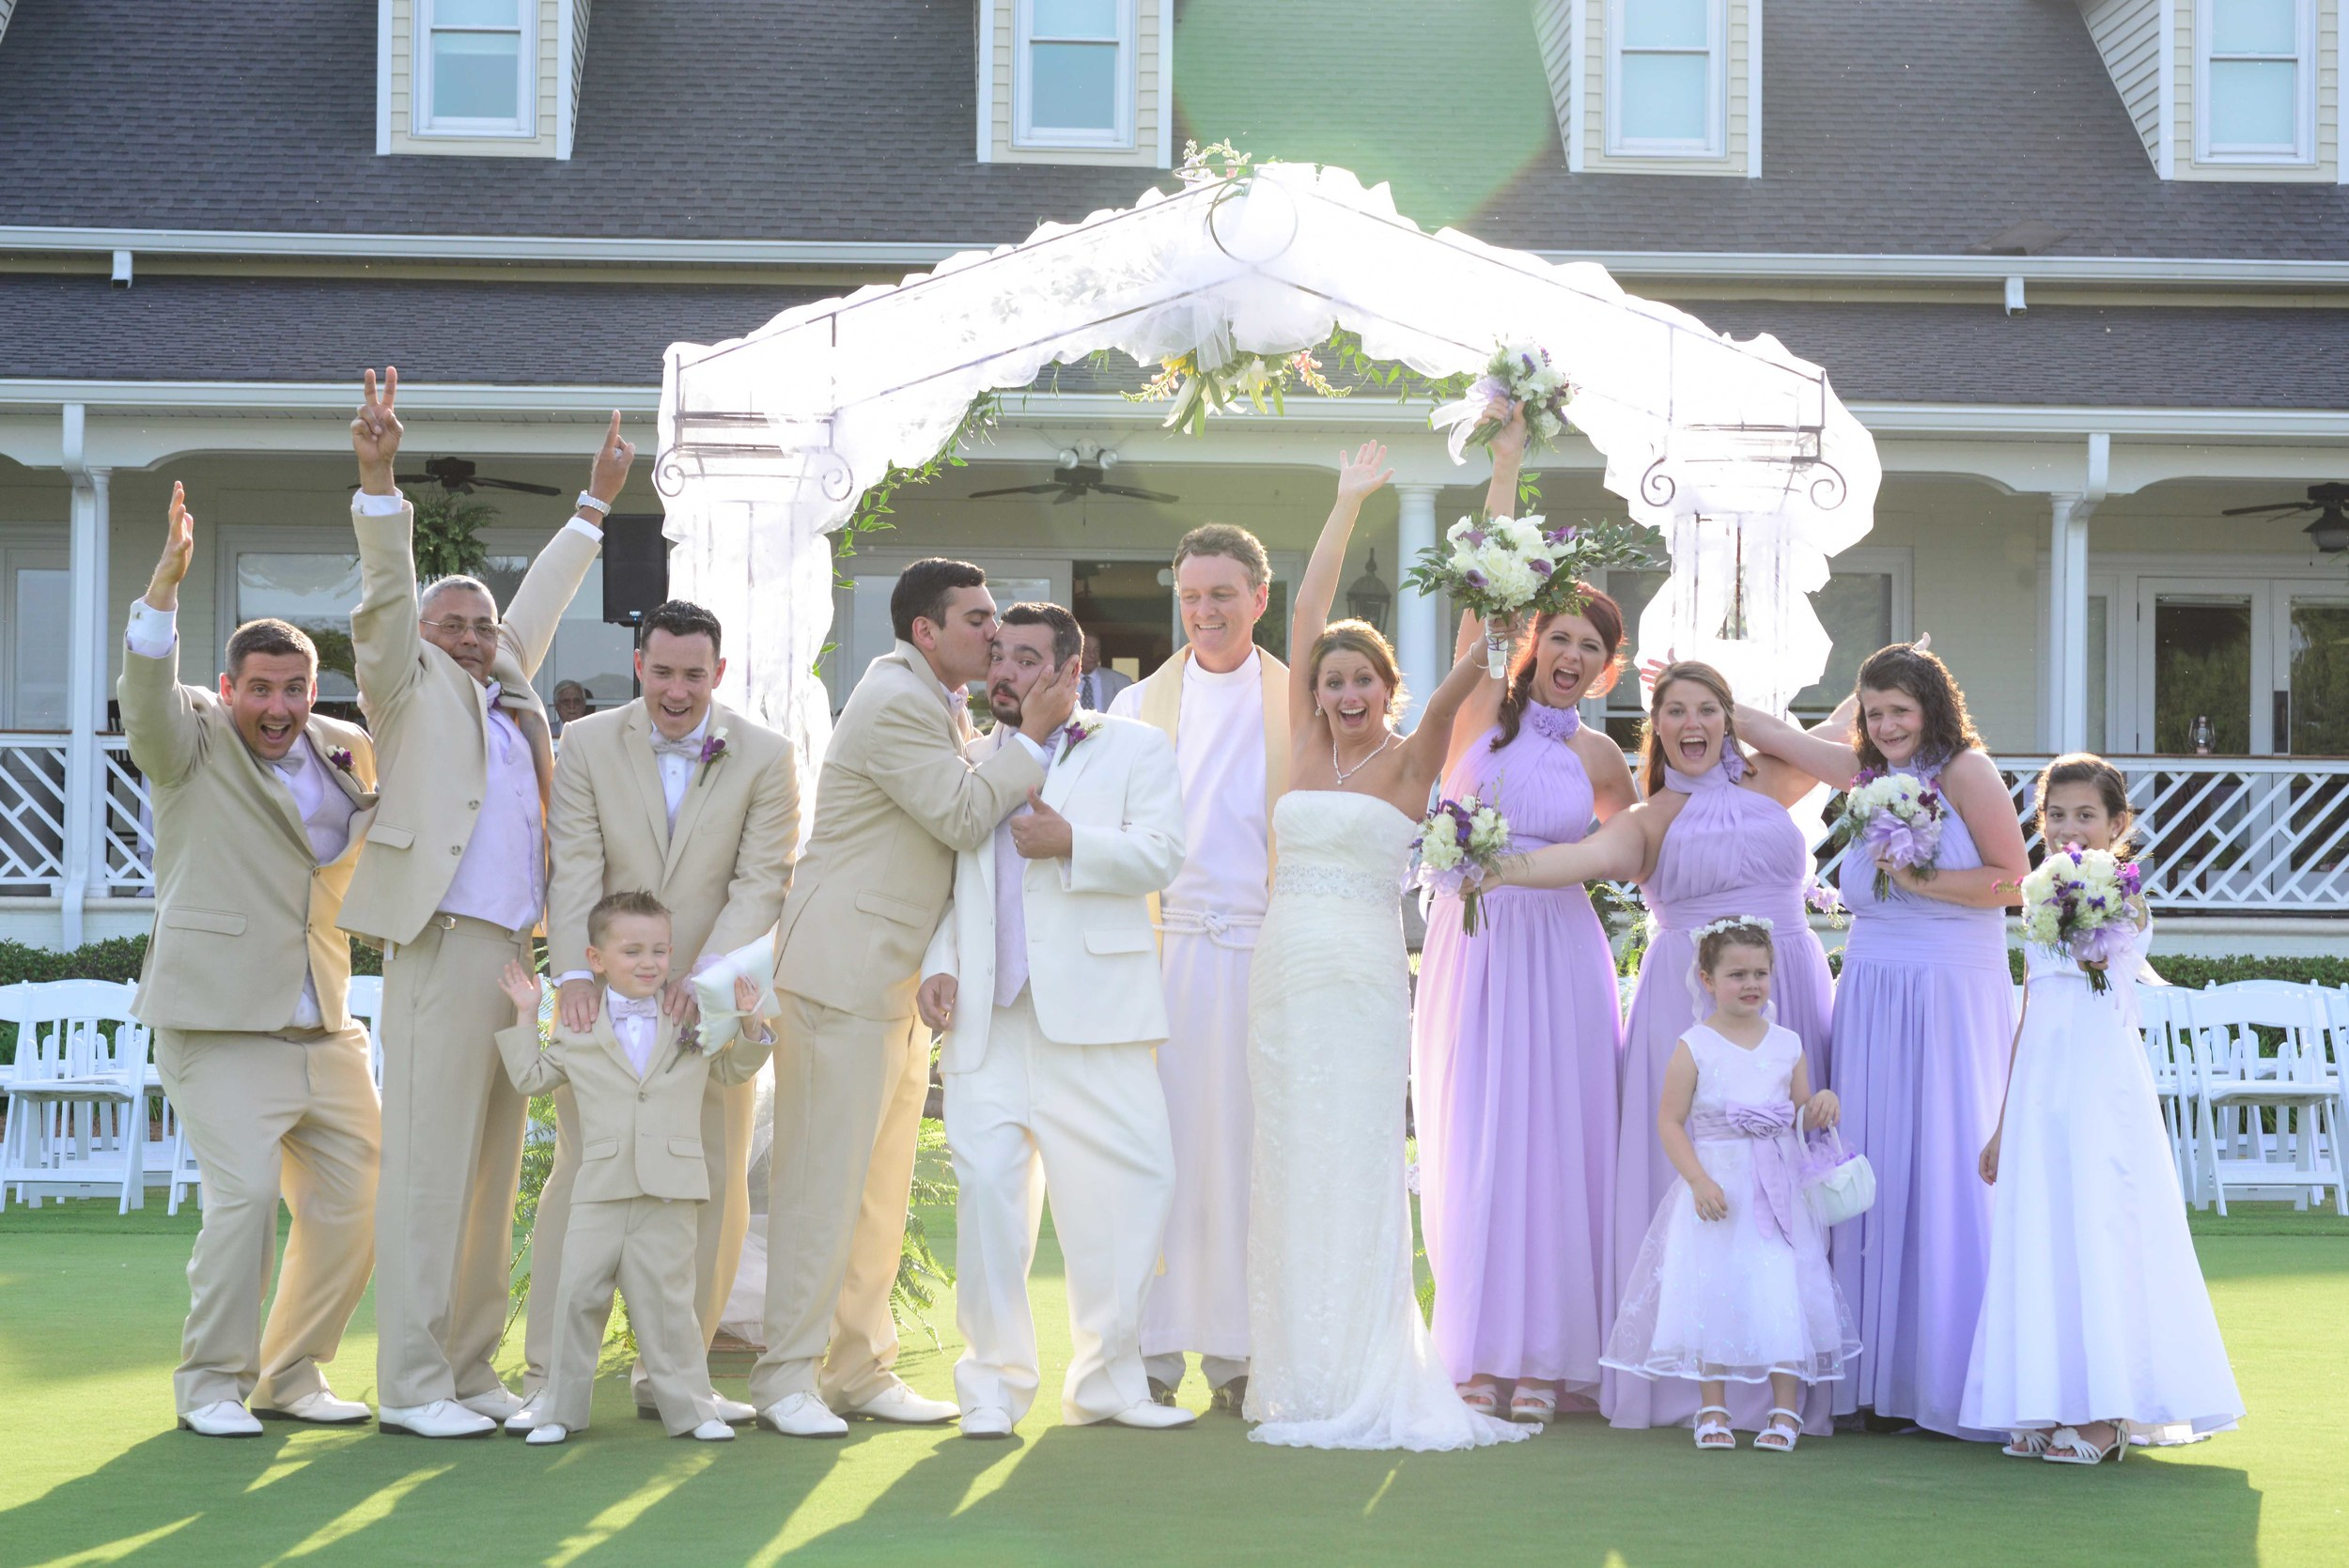 The Bridal Party celebrating right after the ceremony.